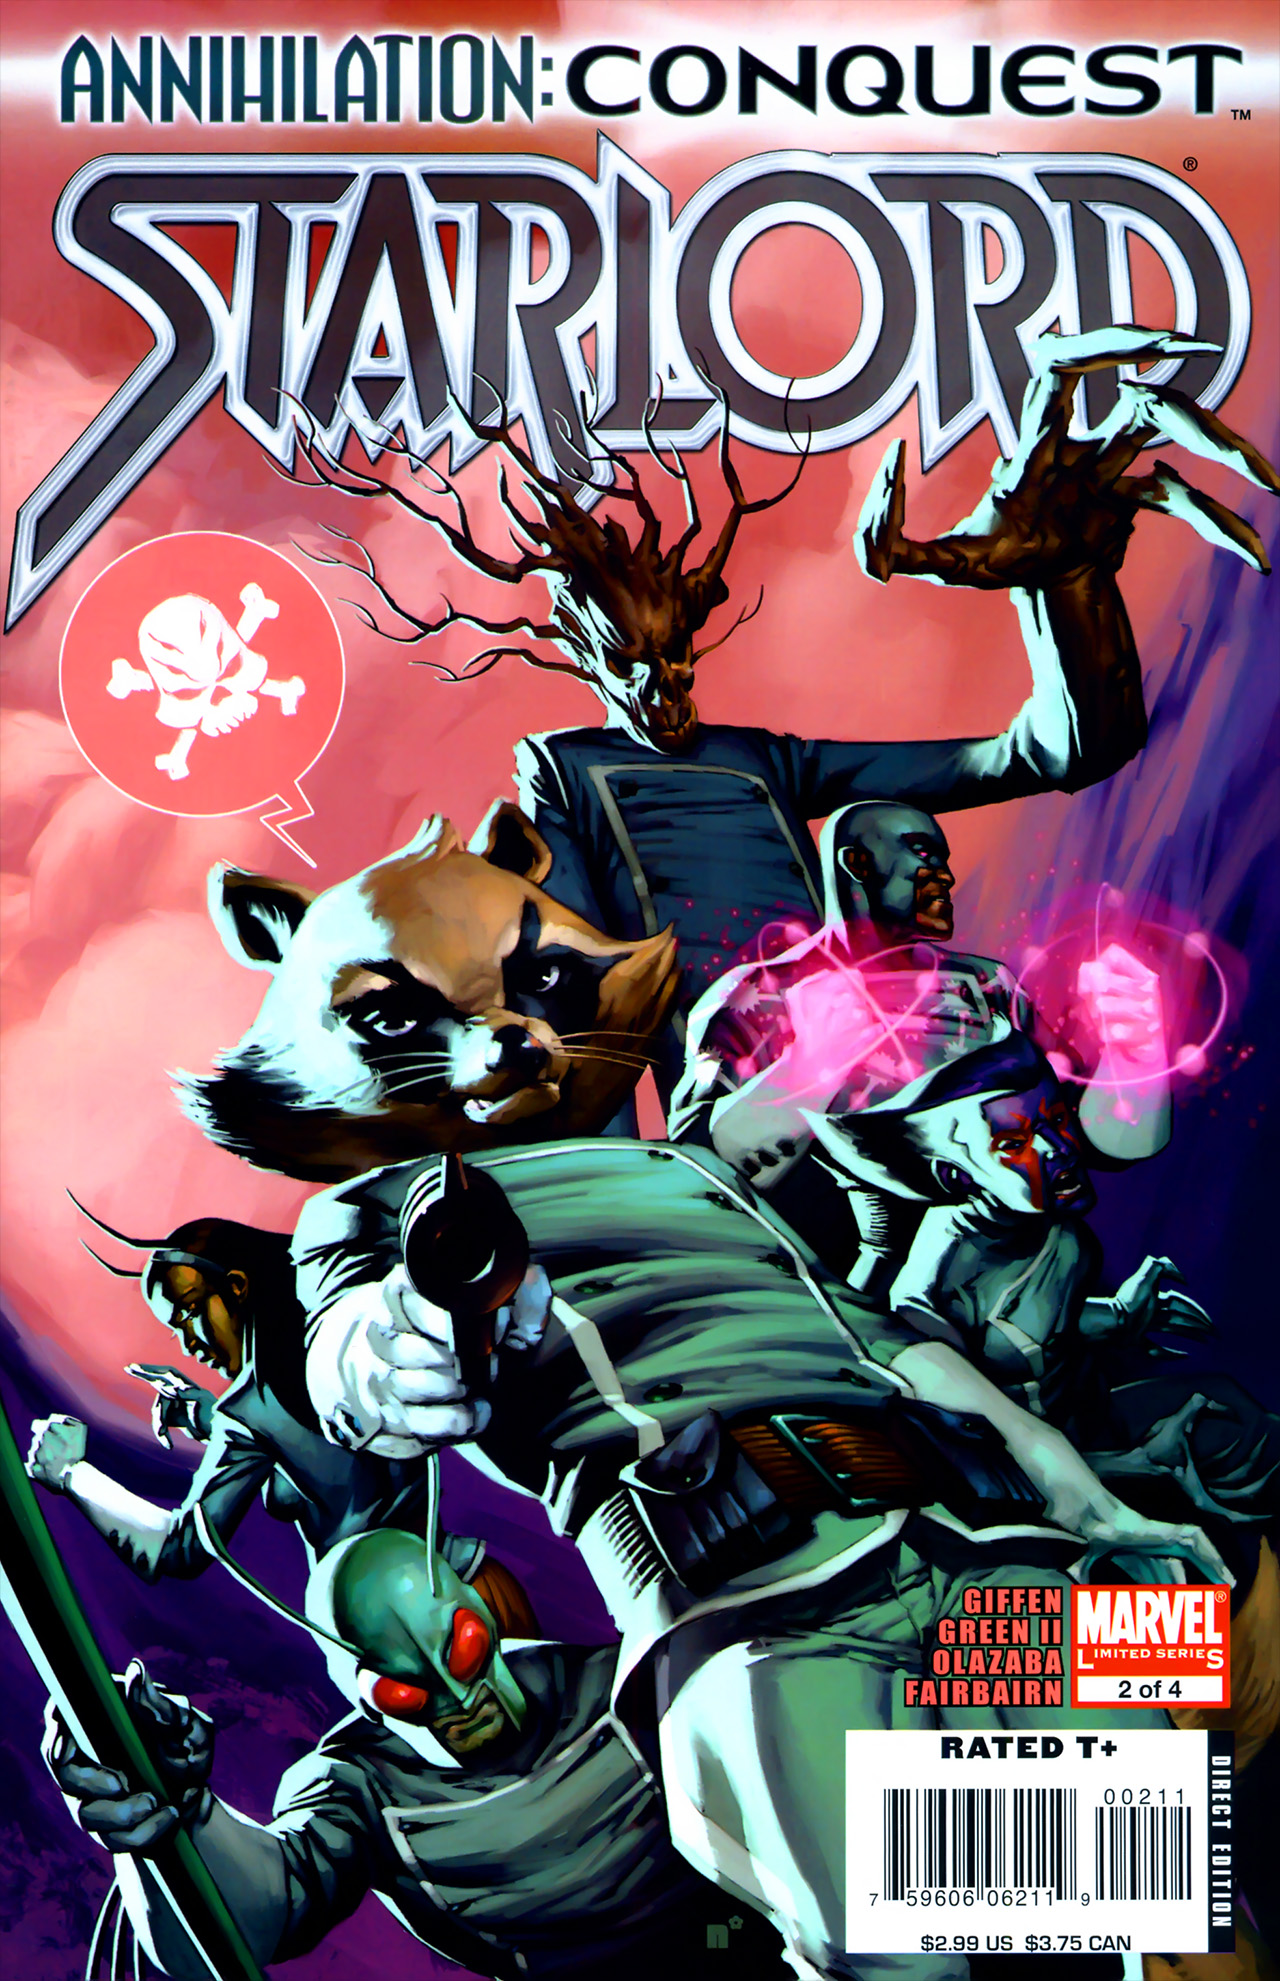 Read online Annihilation: Conquest - Starlord comic -  Issue #2 - 1